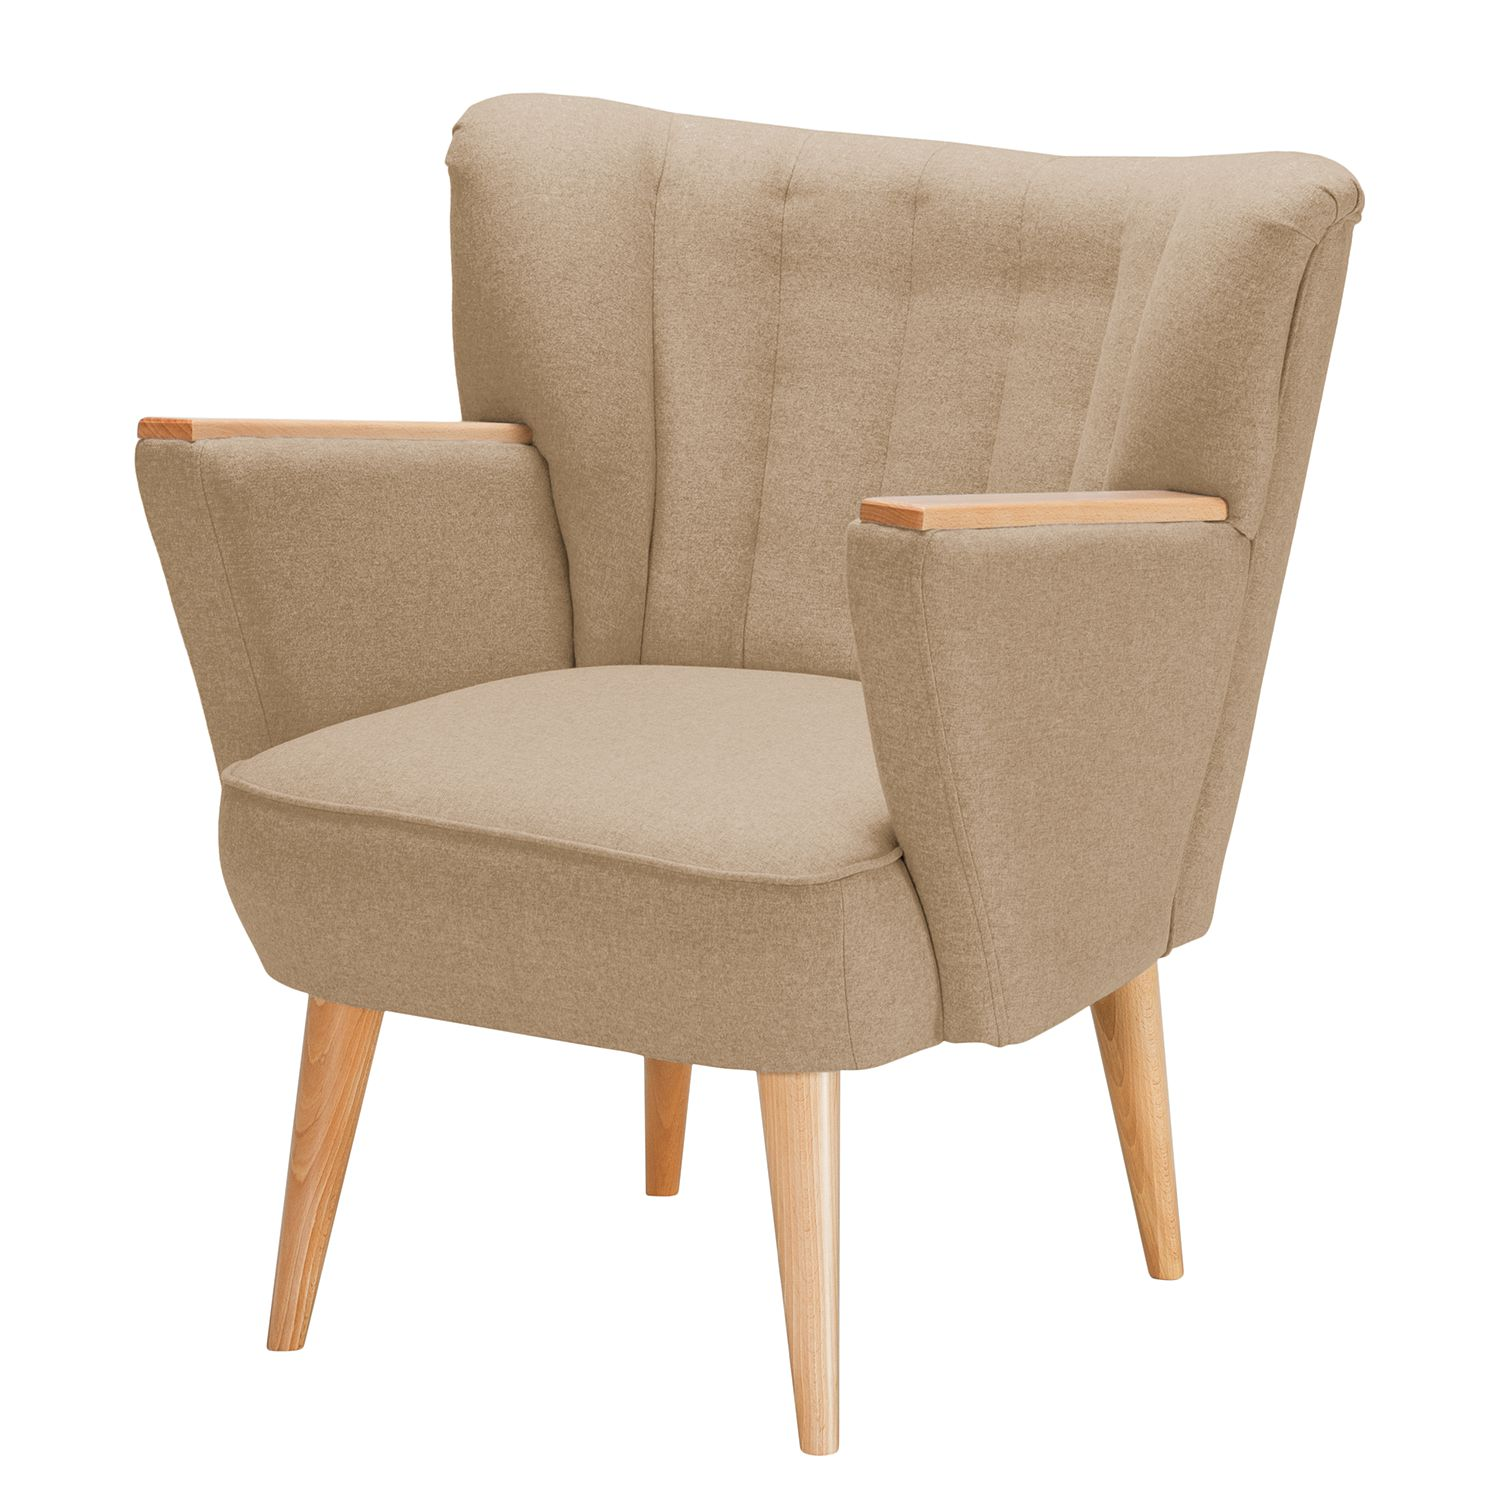 Fauteuil Bauro I